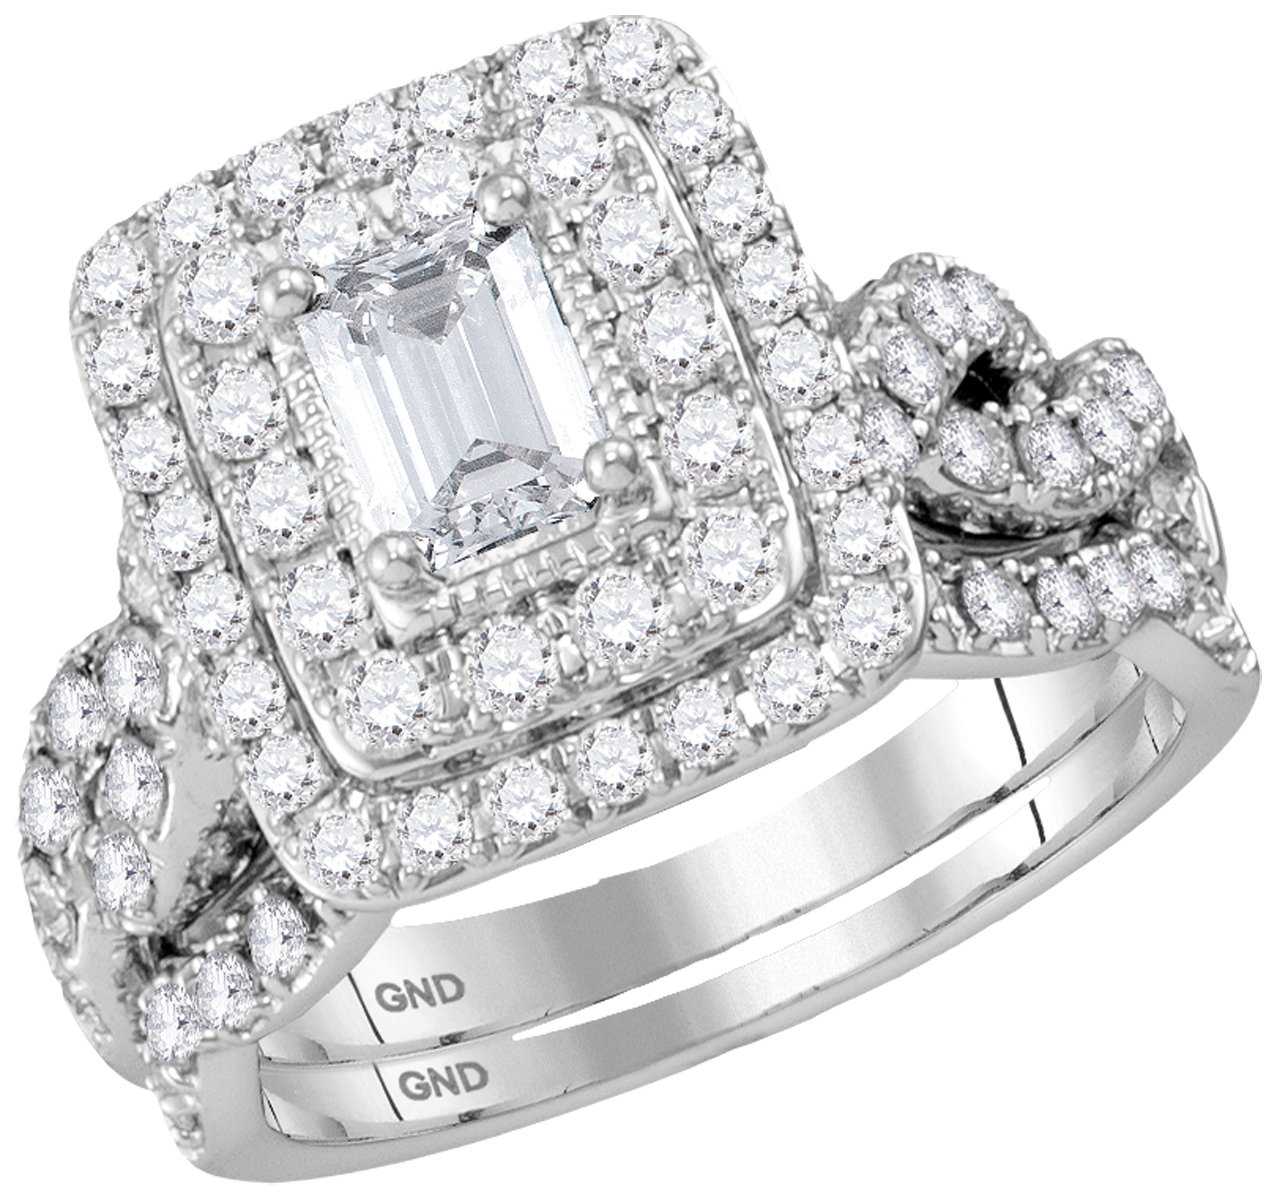 Lucient Bridal Collection diamond ring 2 ctw. 14kt - 1/2 ct. center stone 117001